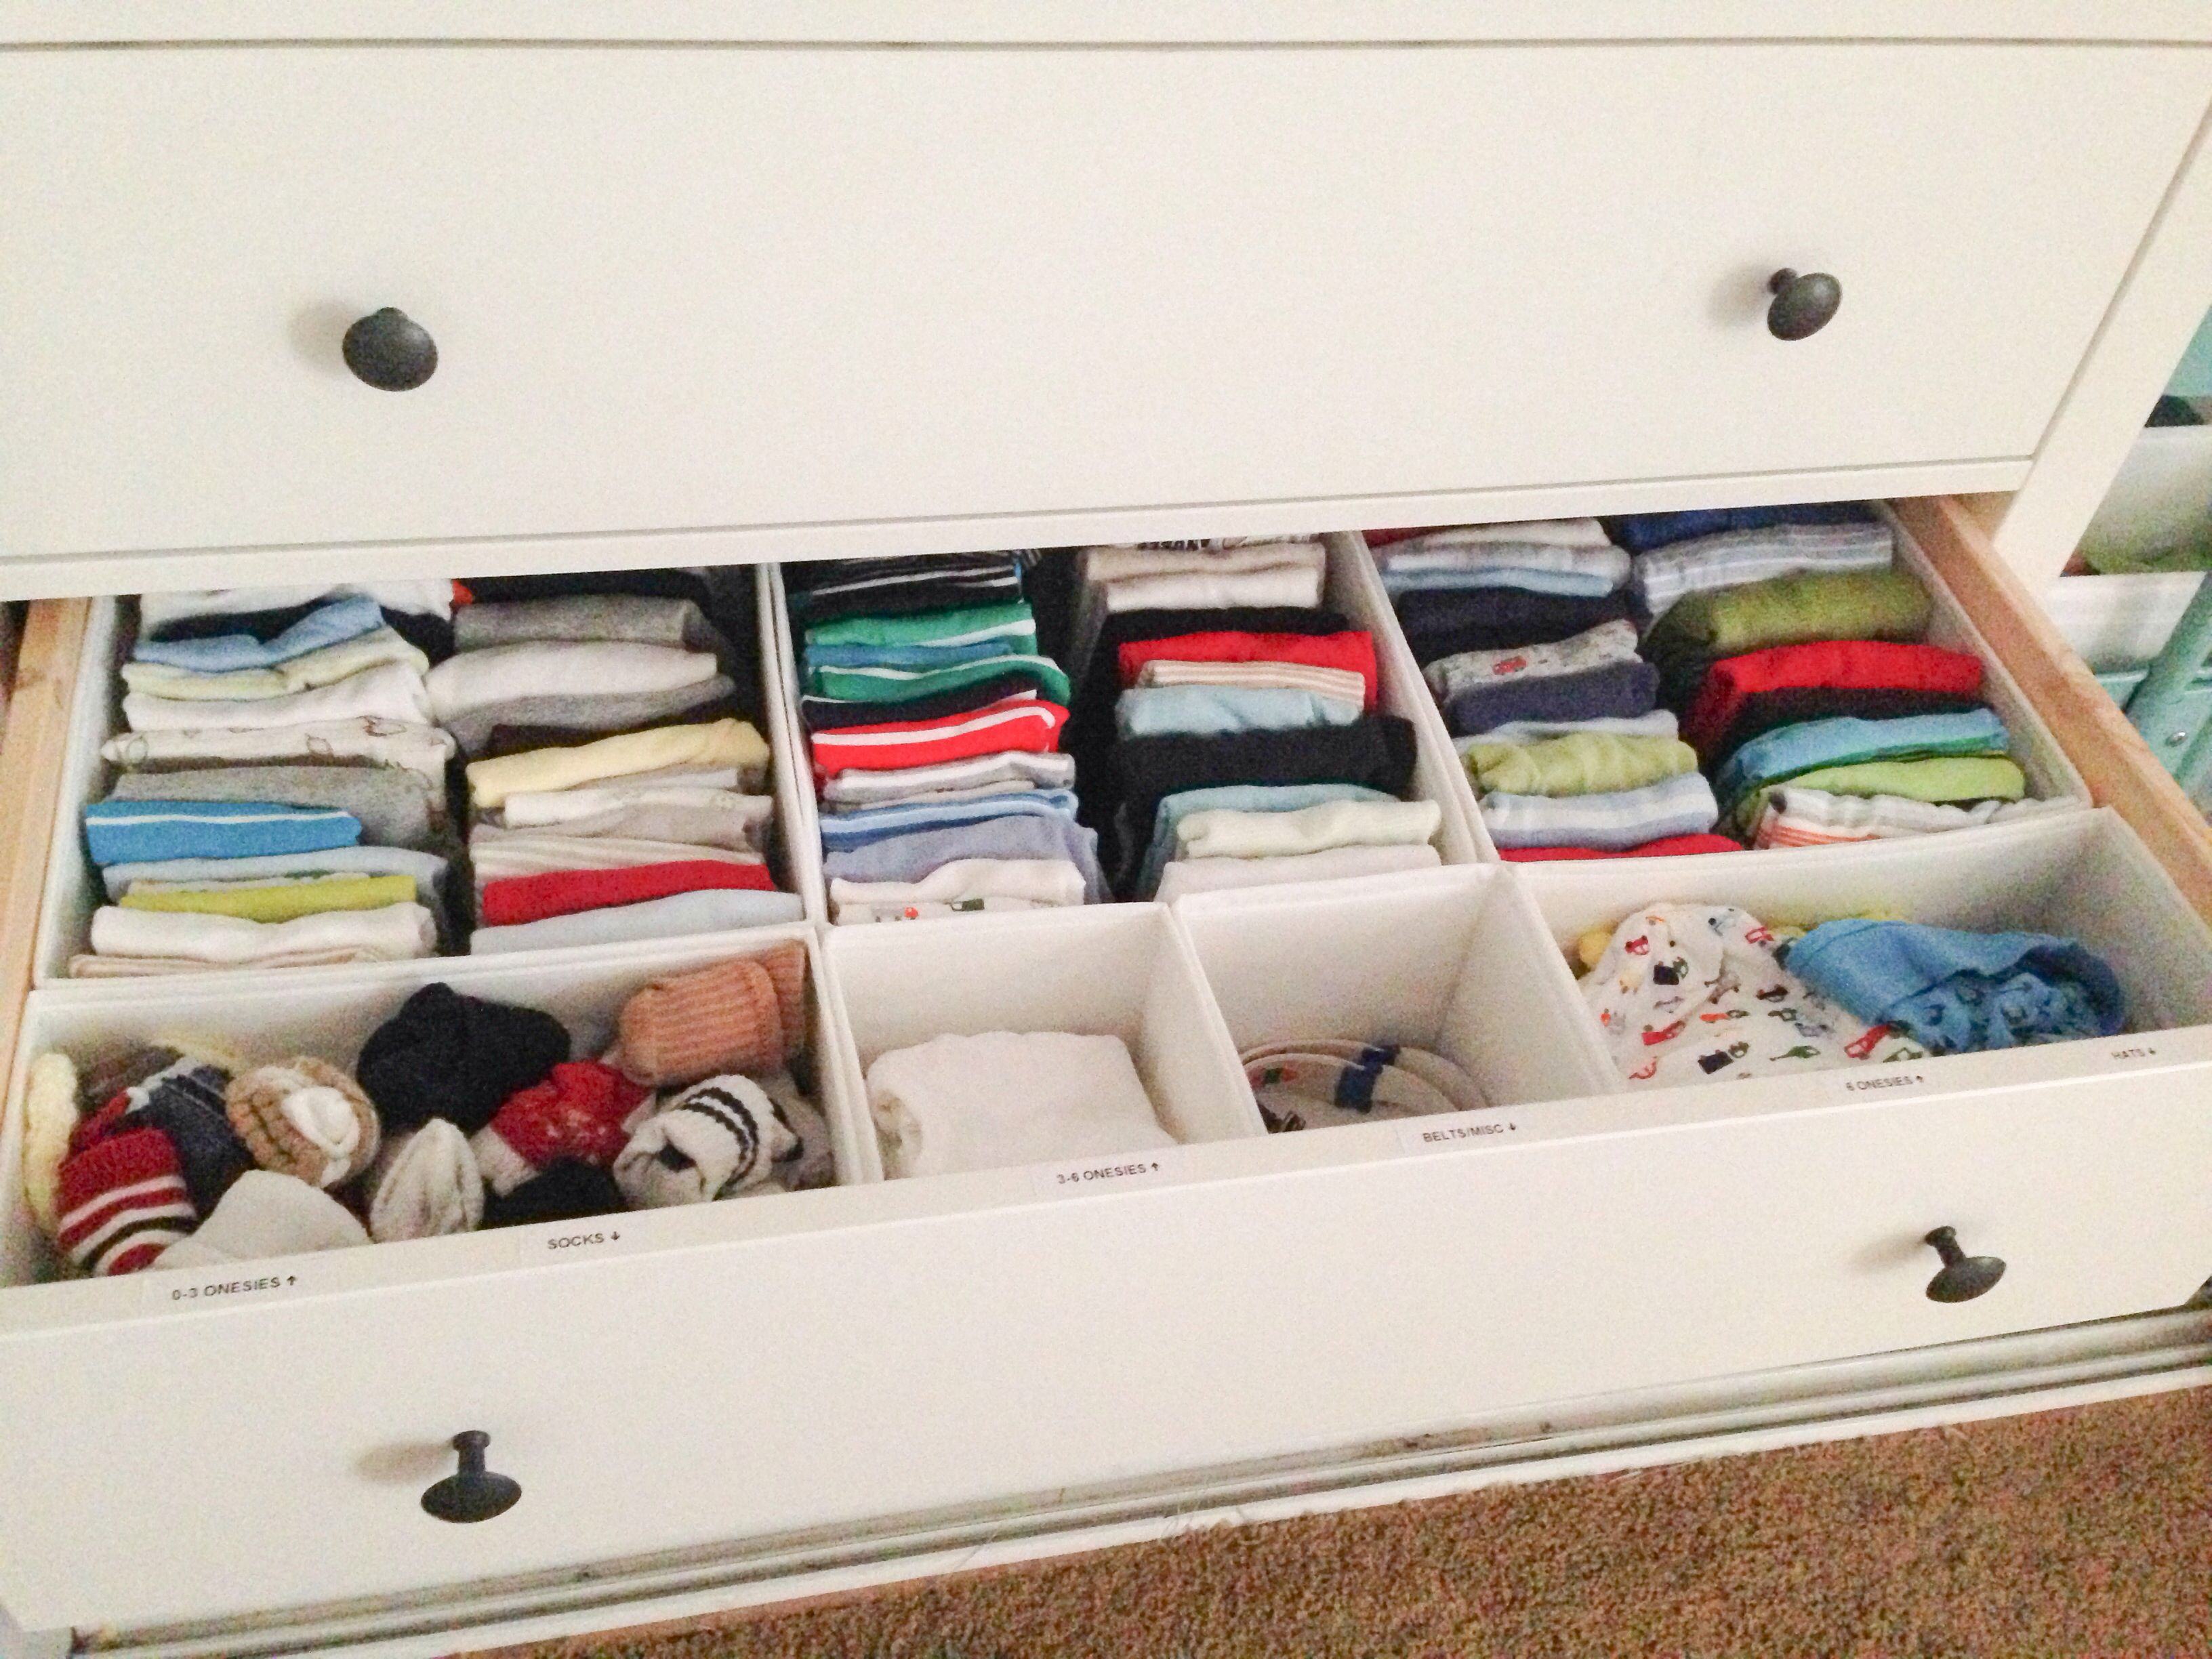 Kitchen Drawer Organizers Ikea How To Organize Drawers For Every Room Of The House Babies